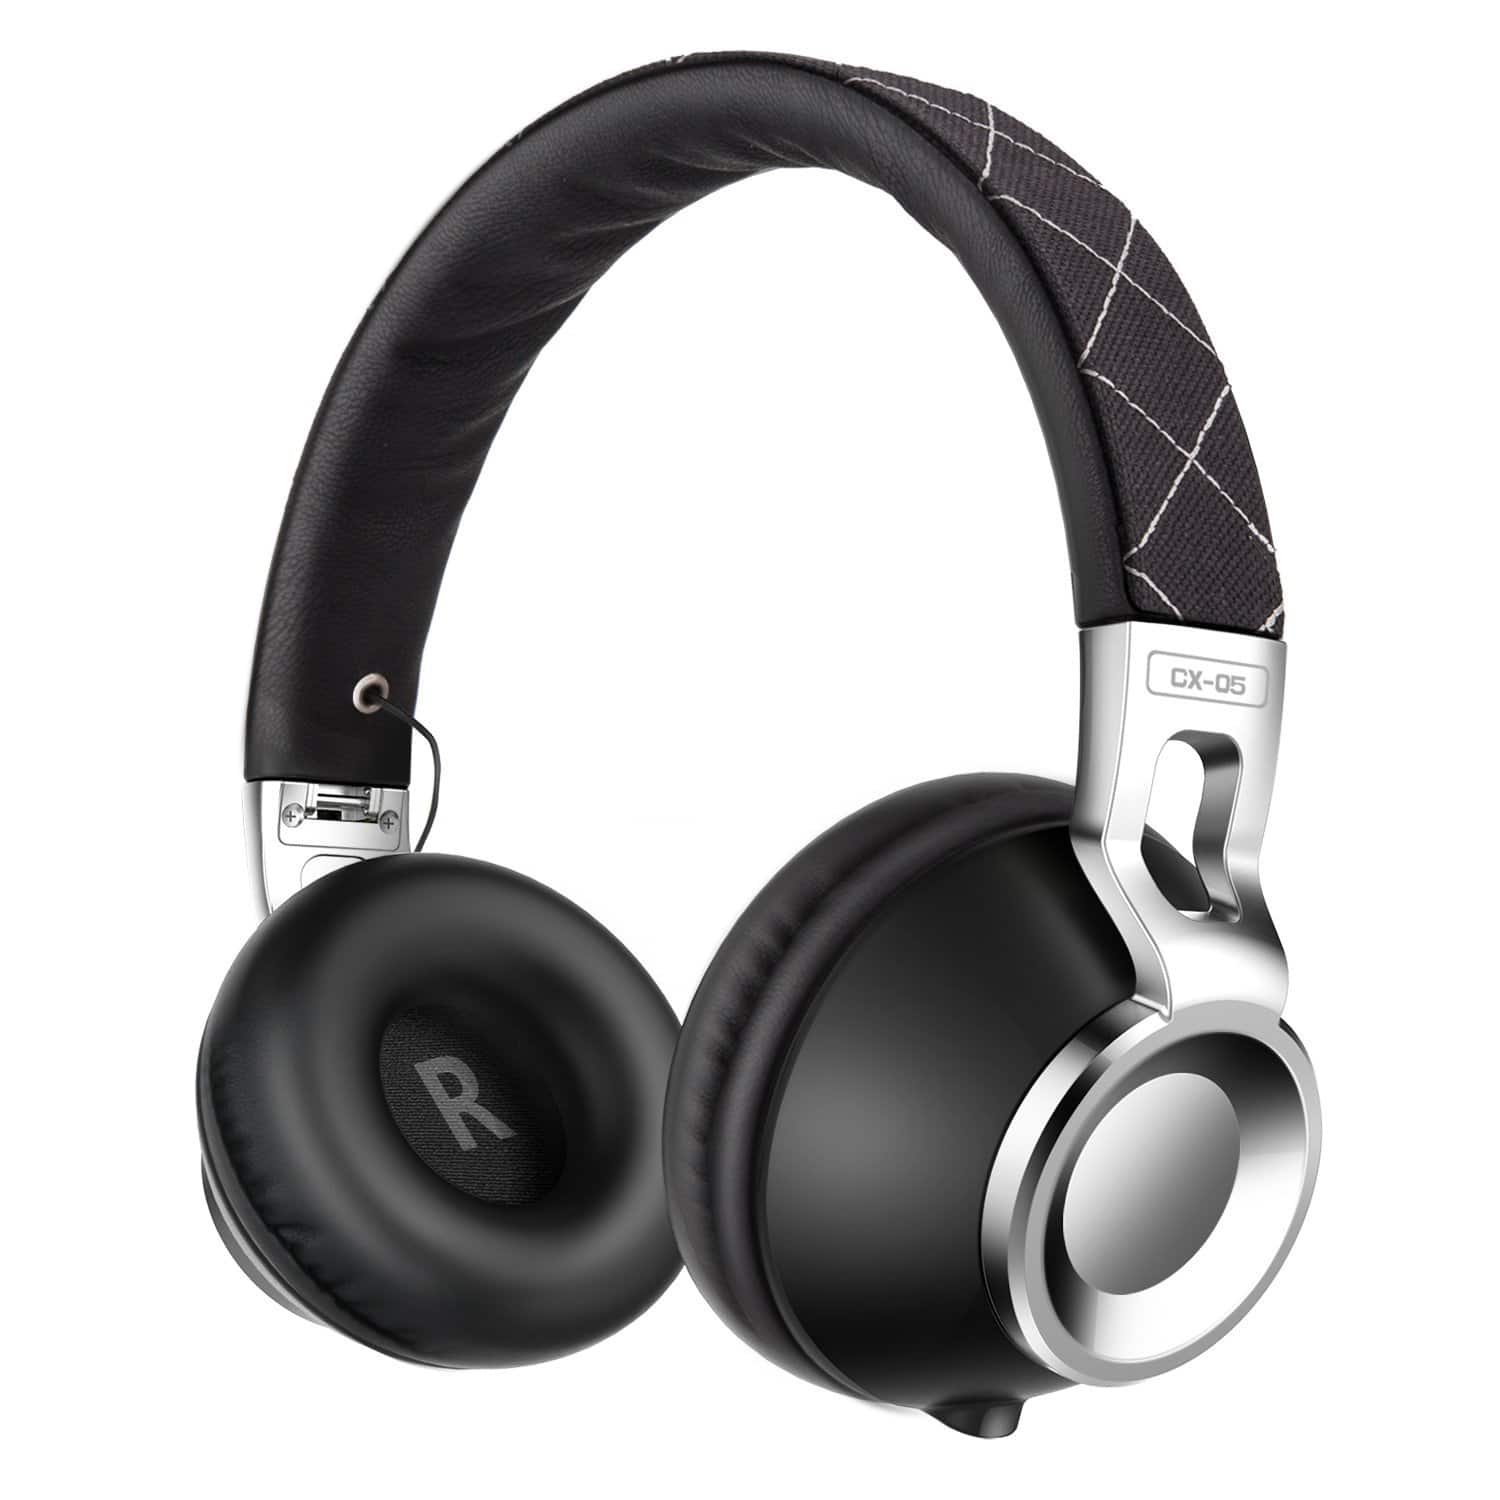 Sound Intone CX-05 Noise Isolating Headphones with Microphone for $16.79